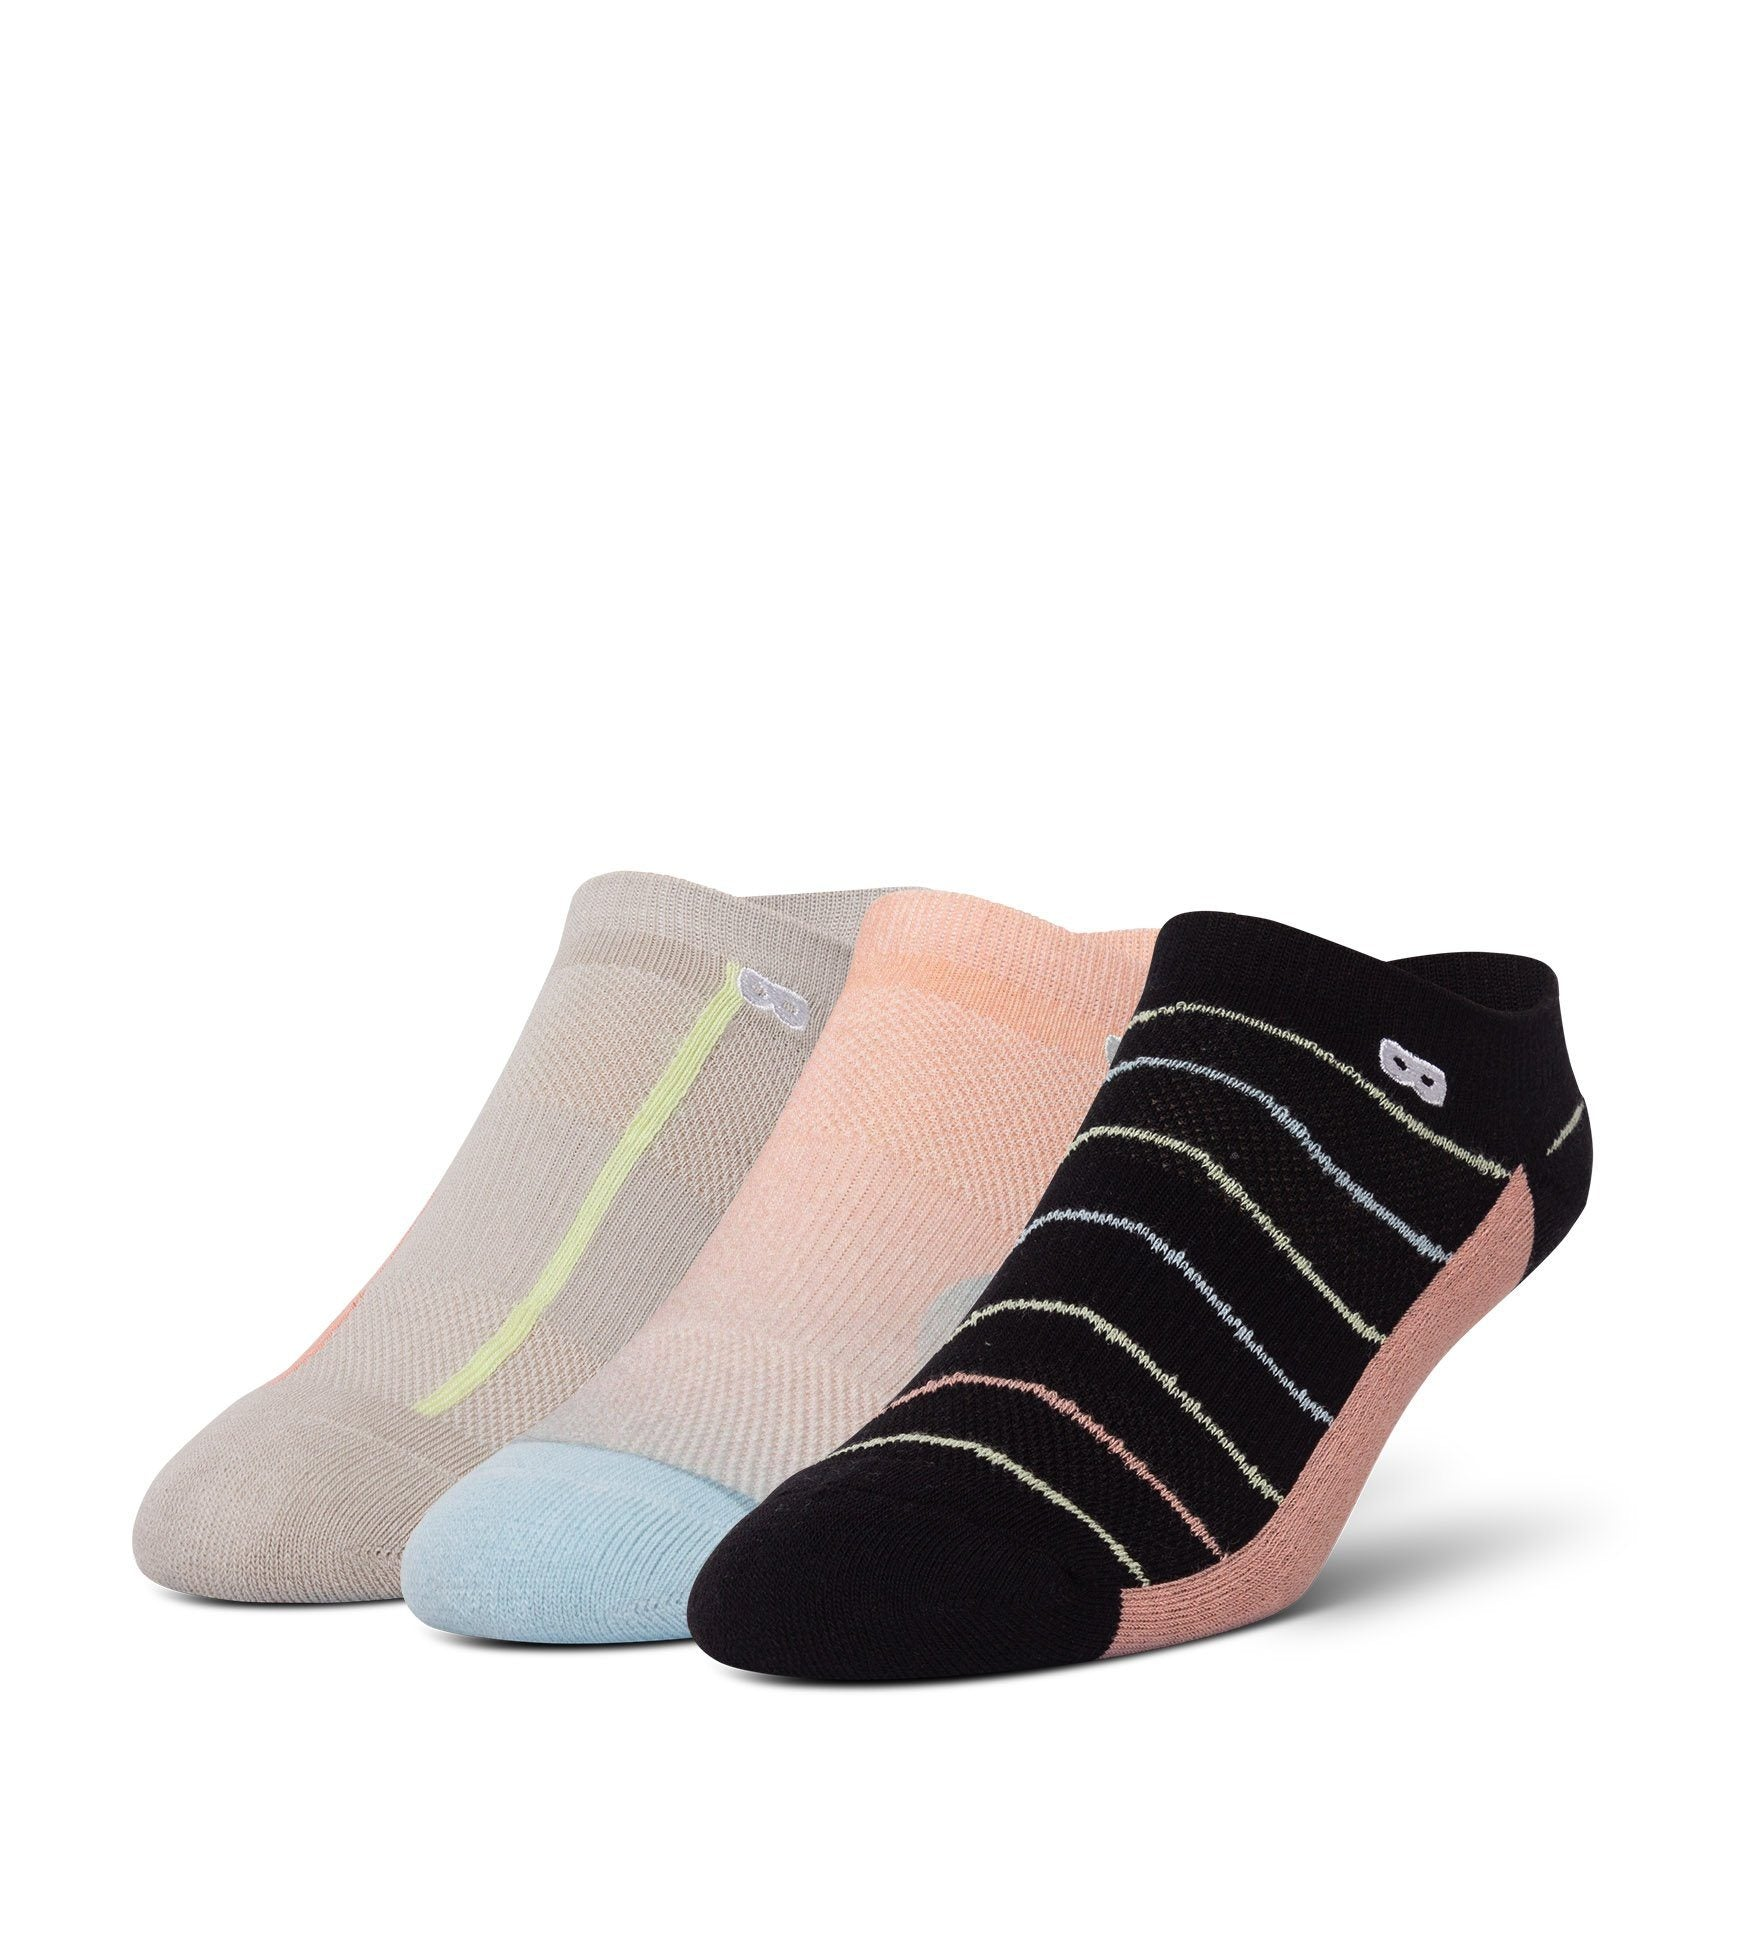 Dana Scully Women's Cushion Low-Cut Socks 3 Pack